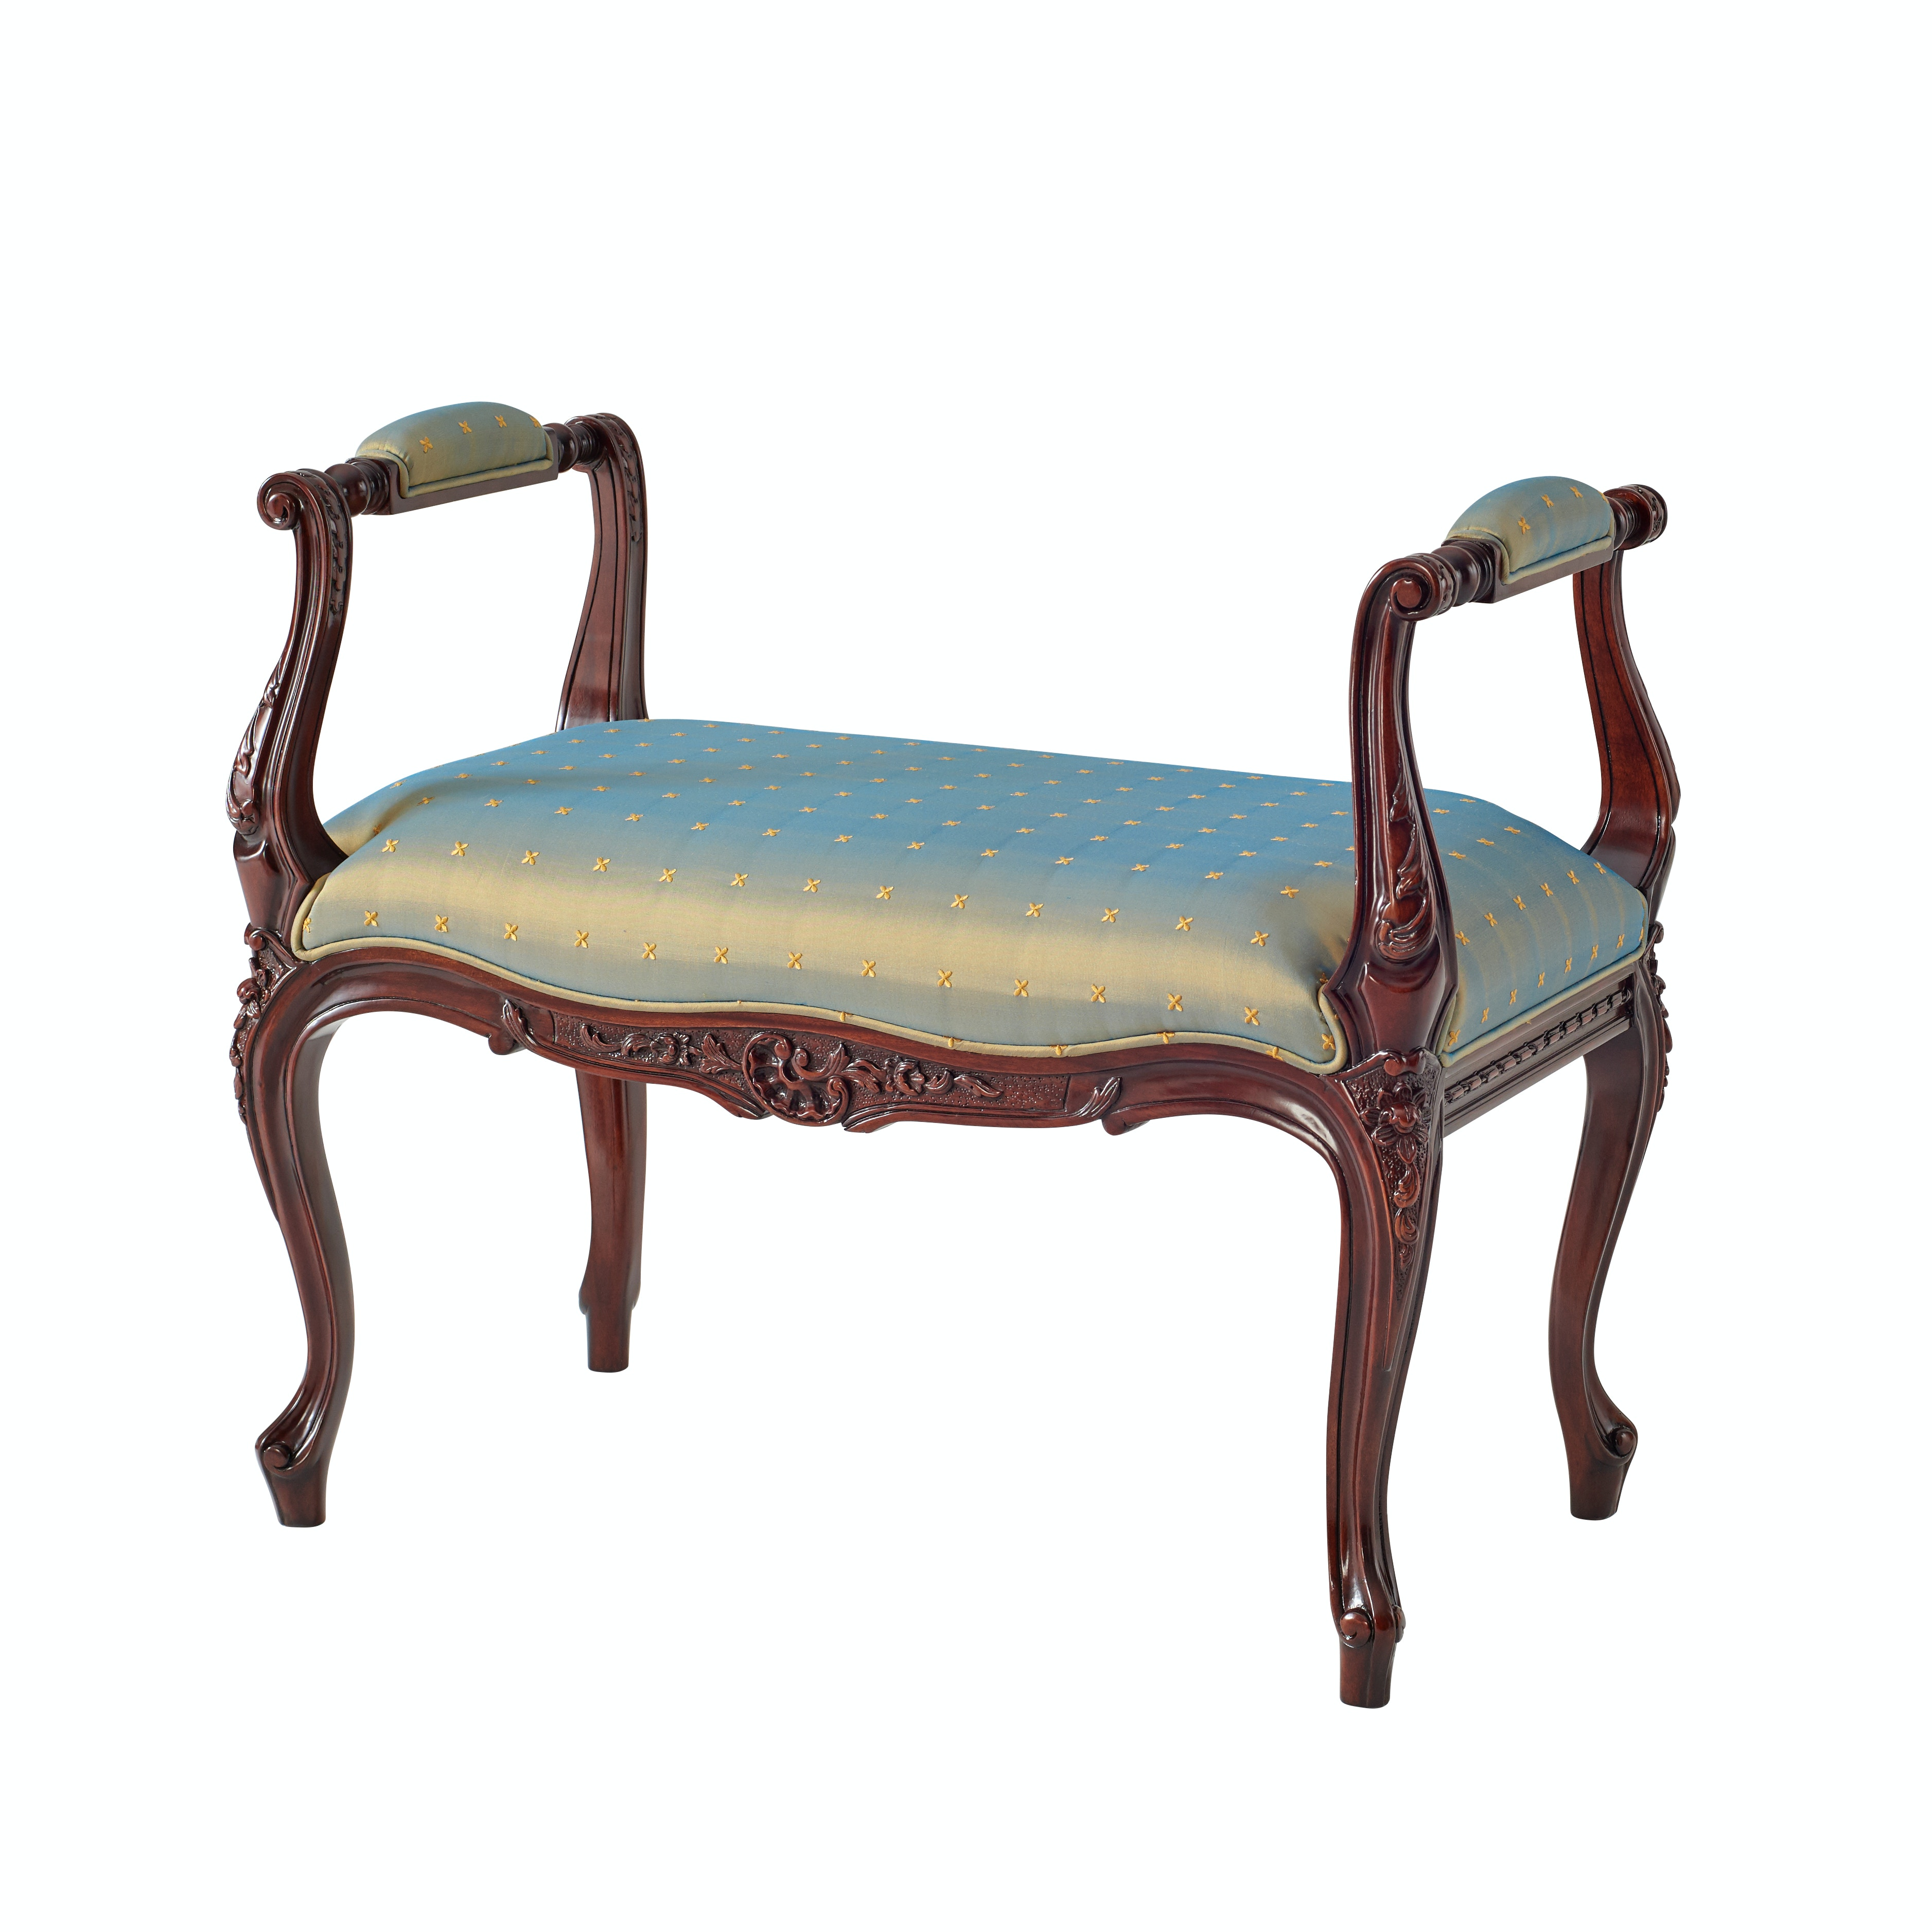 Theodore Alexander A Hand Carved Stool Or Window Seat 4400 150.1ABM